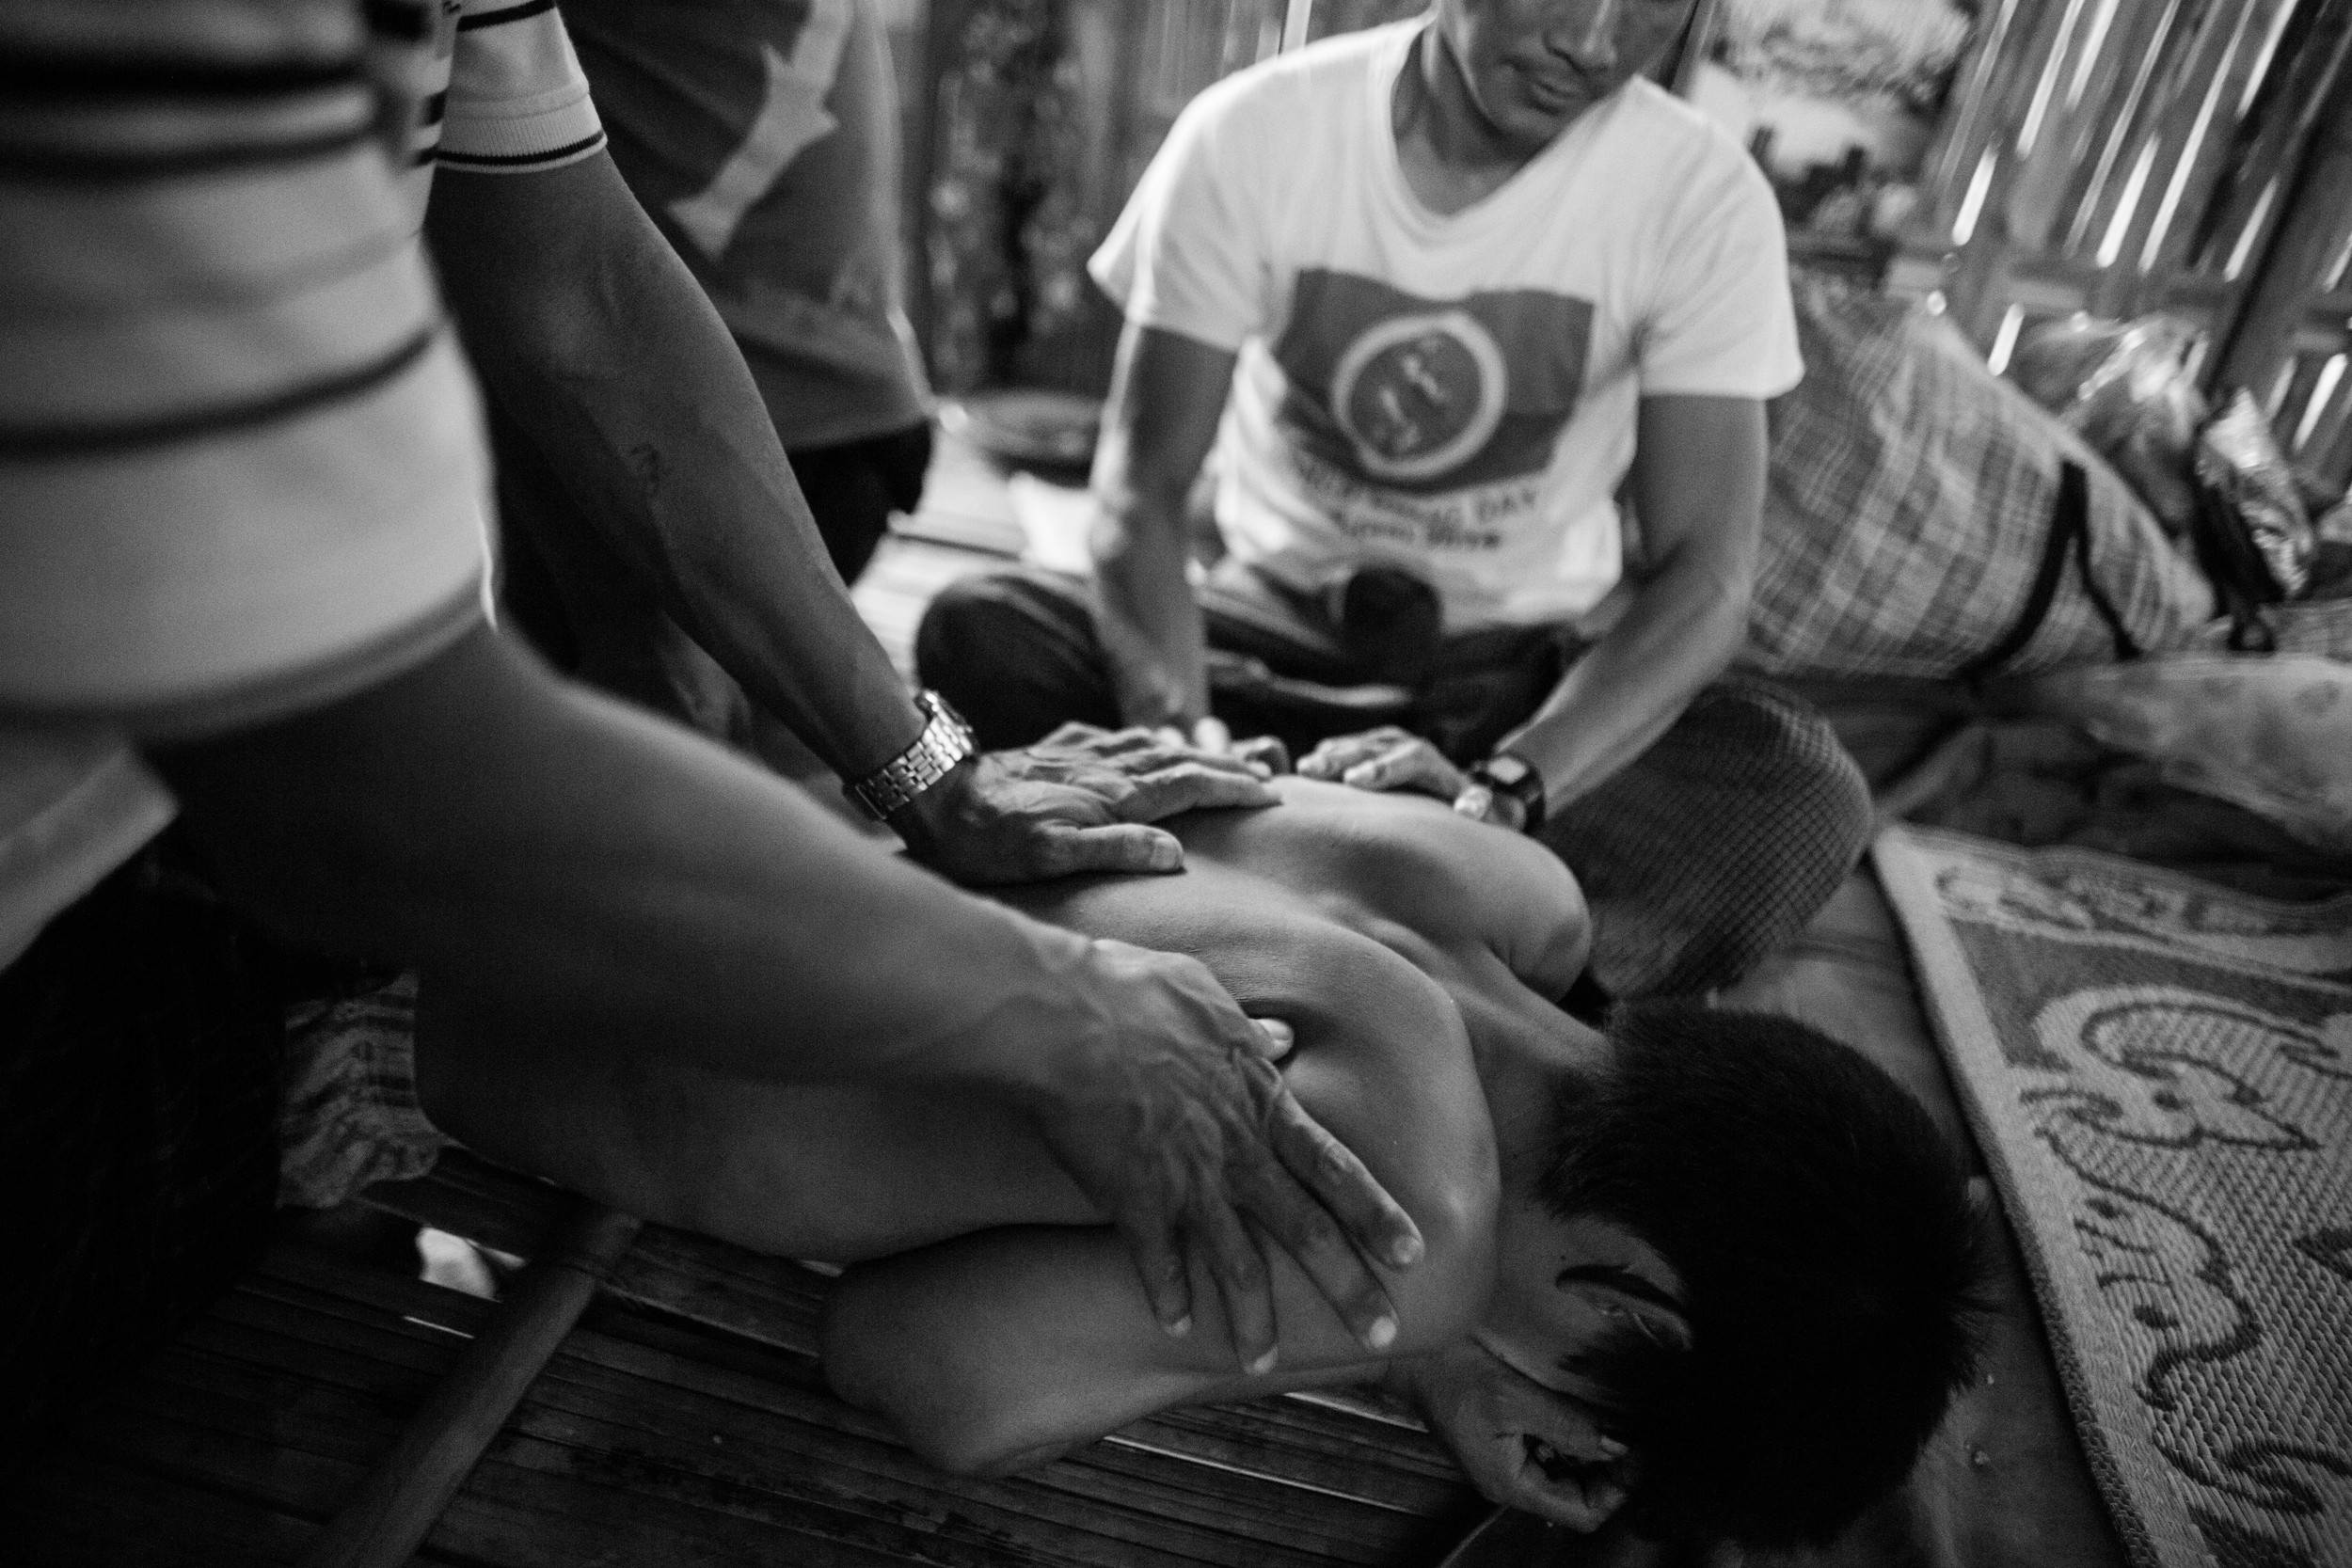 YCC staff members massage Hkun Aung, 34 while suffersthrough withdrawal pains. Hkun Aung has been an addict for 16 years and this is his third day in rehab.